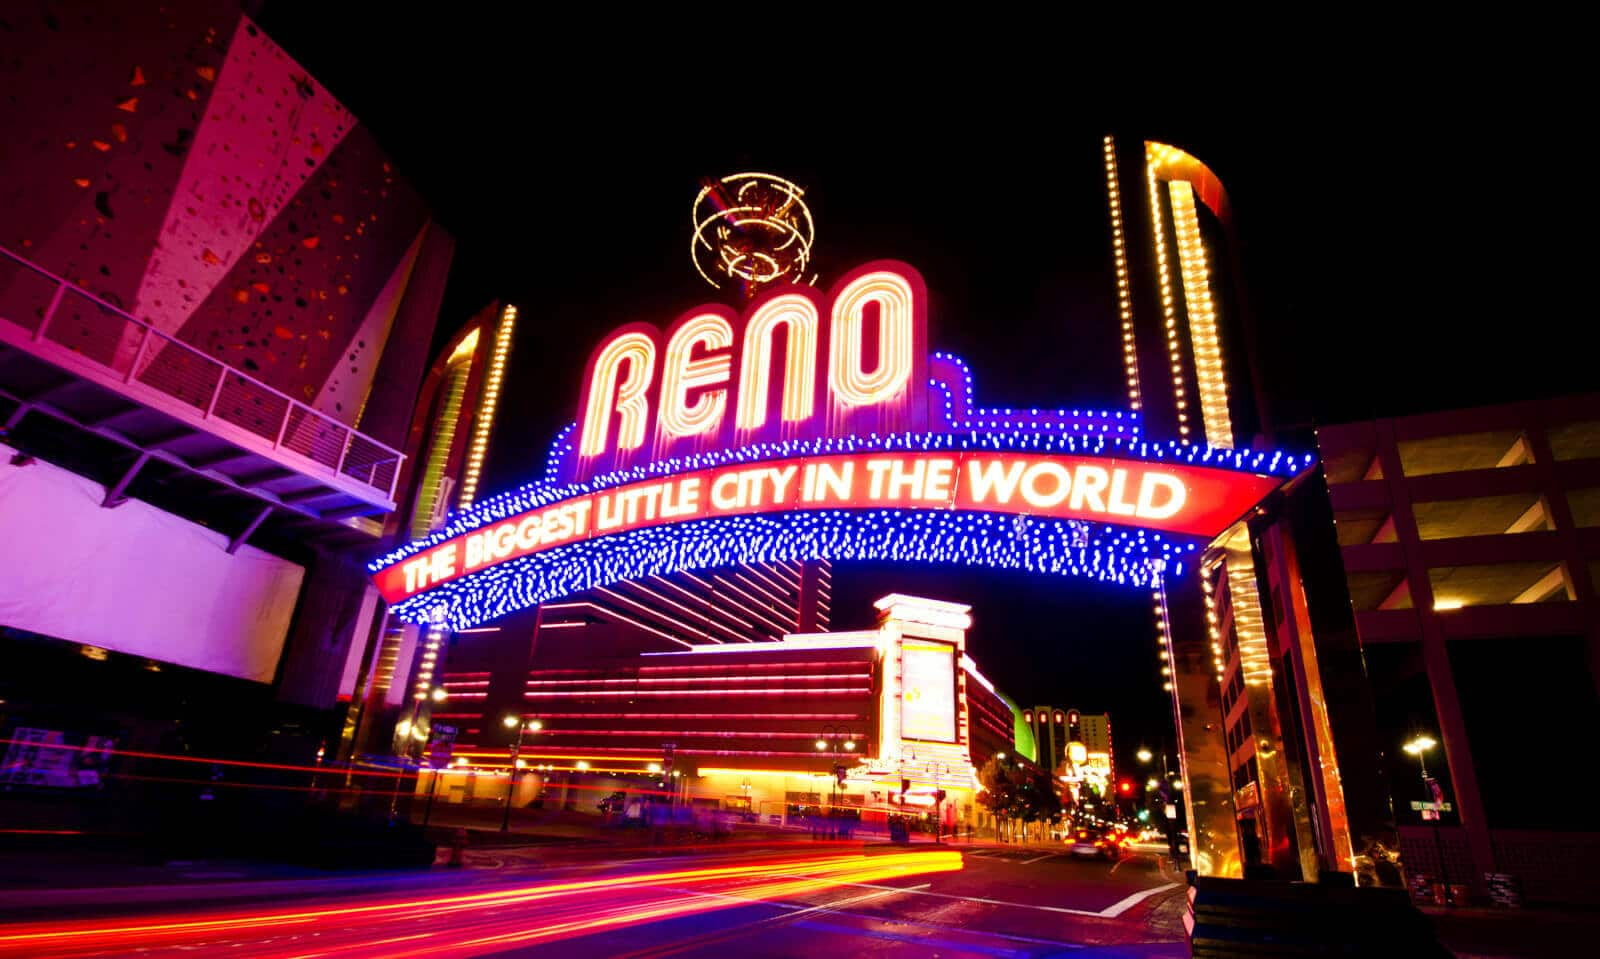 Thumnail photo of Reno